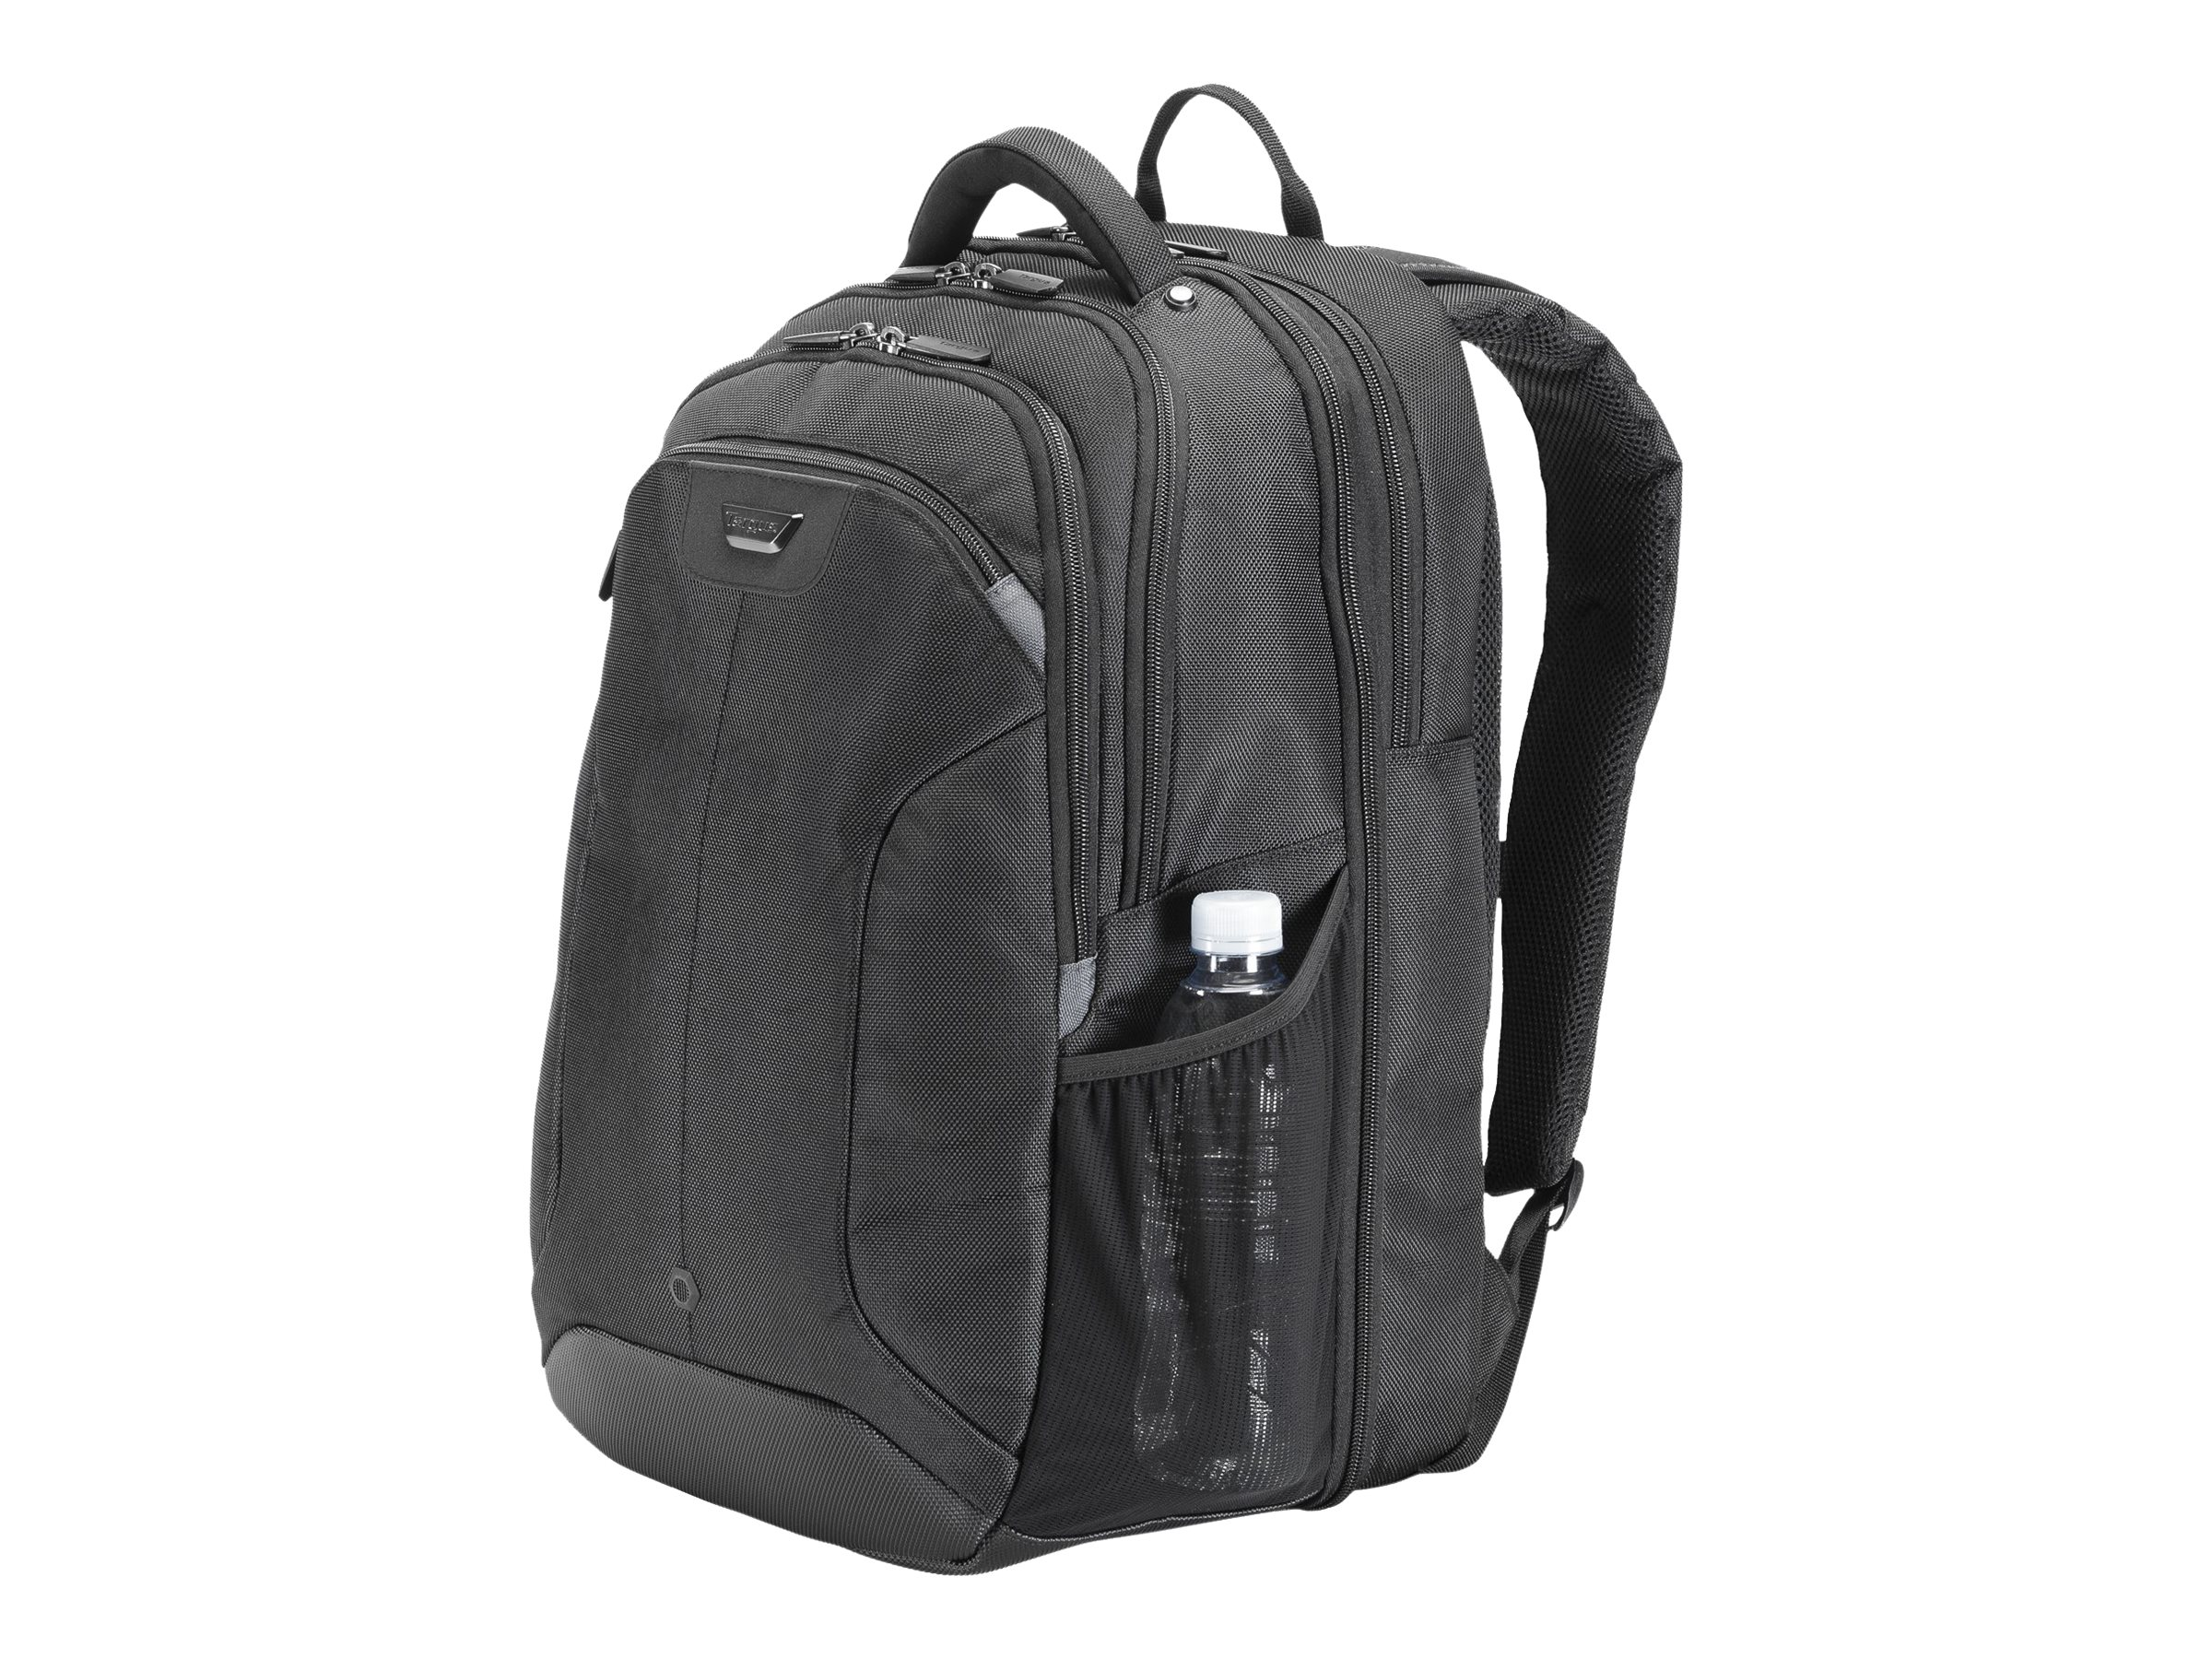 Targus Corporate Travel Backpack, 15.4 Nylon, Black